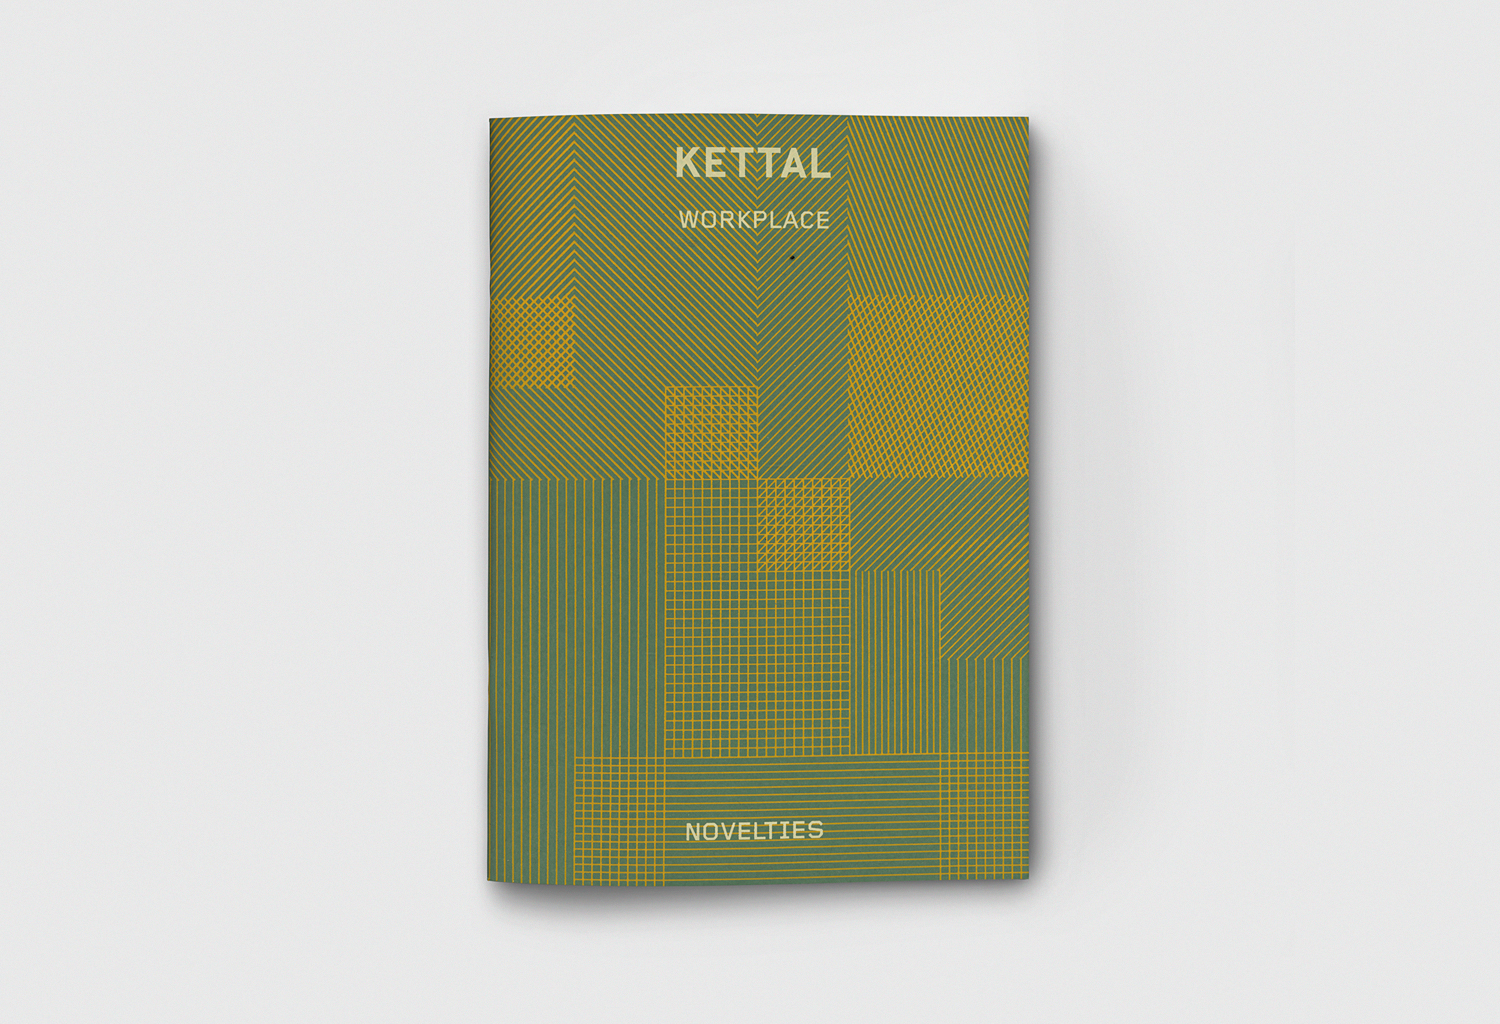 kettal-workplace-1-2